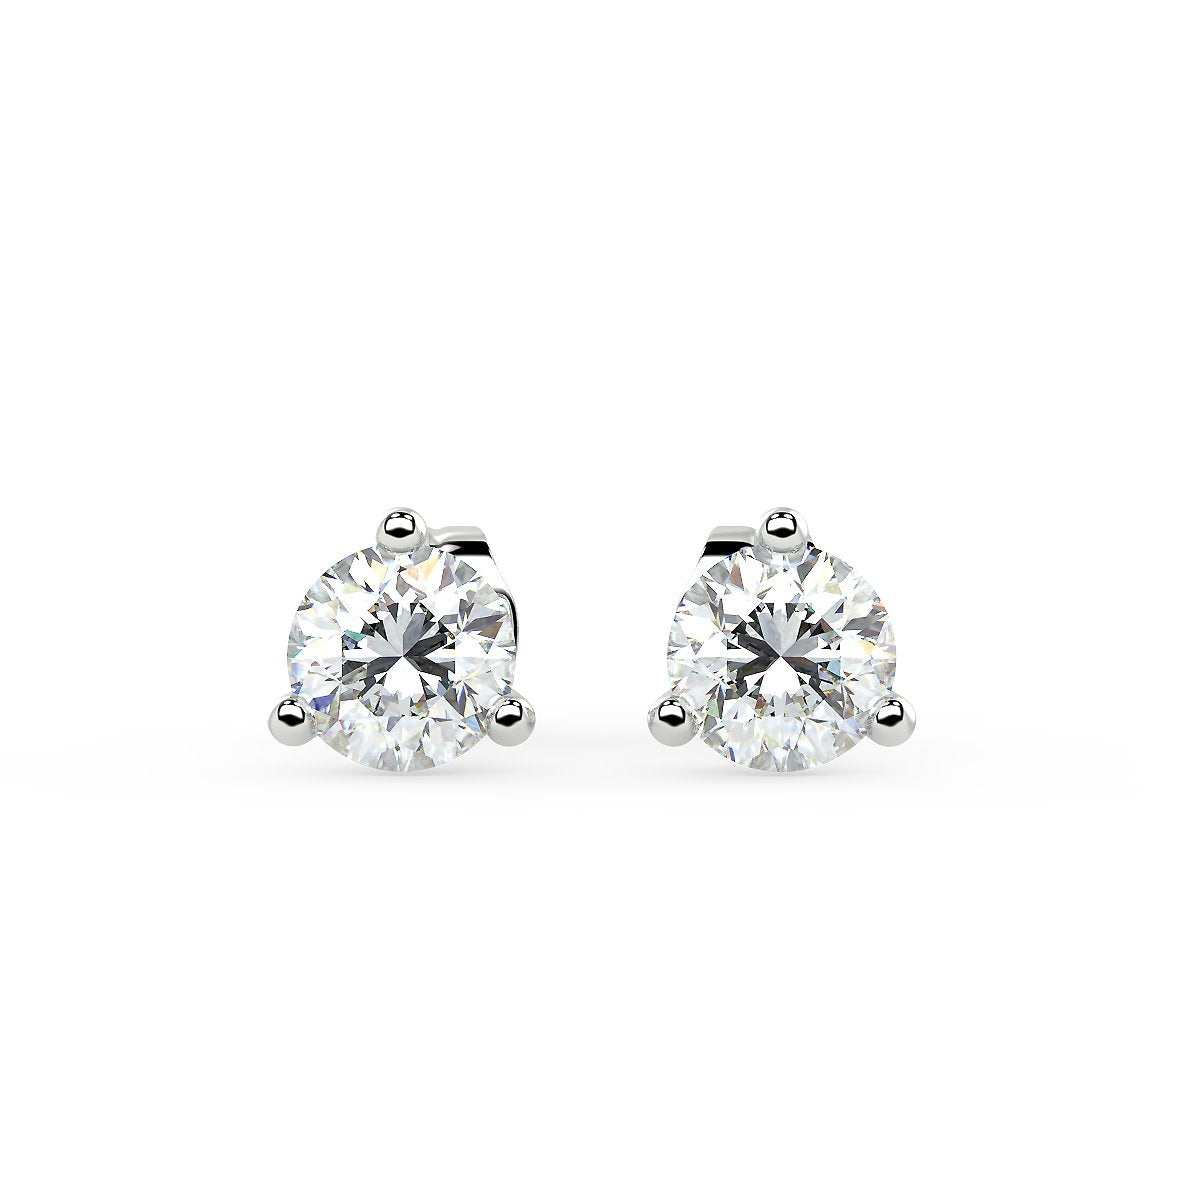 Sirius Martini Stud Earrings White Gold (0.50 Ct. Tw.)